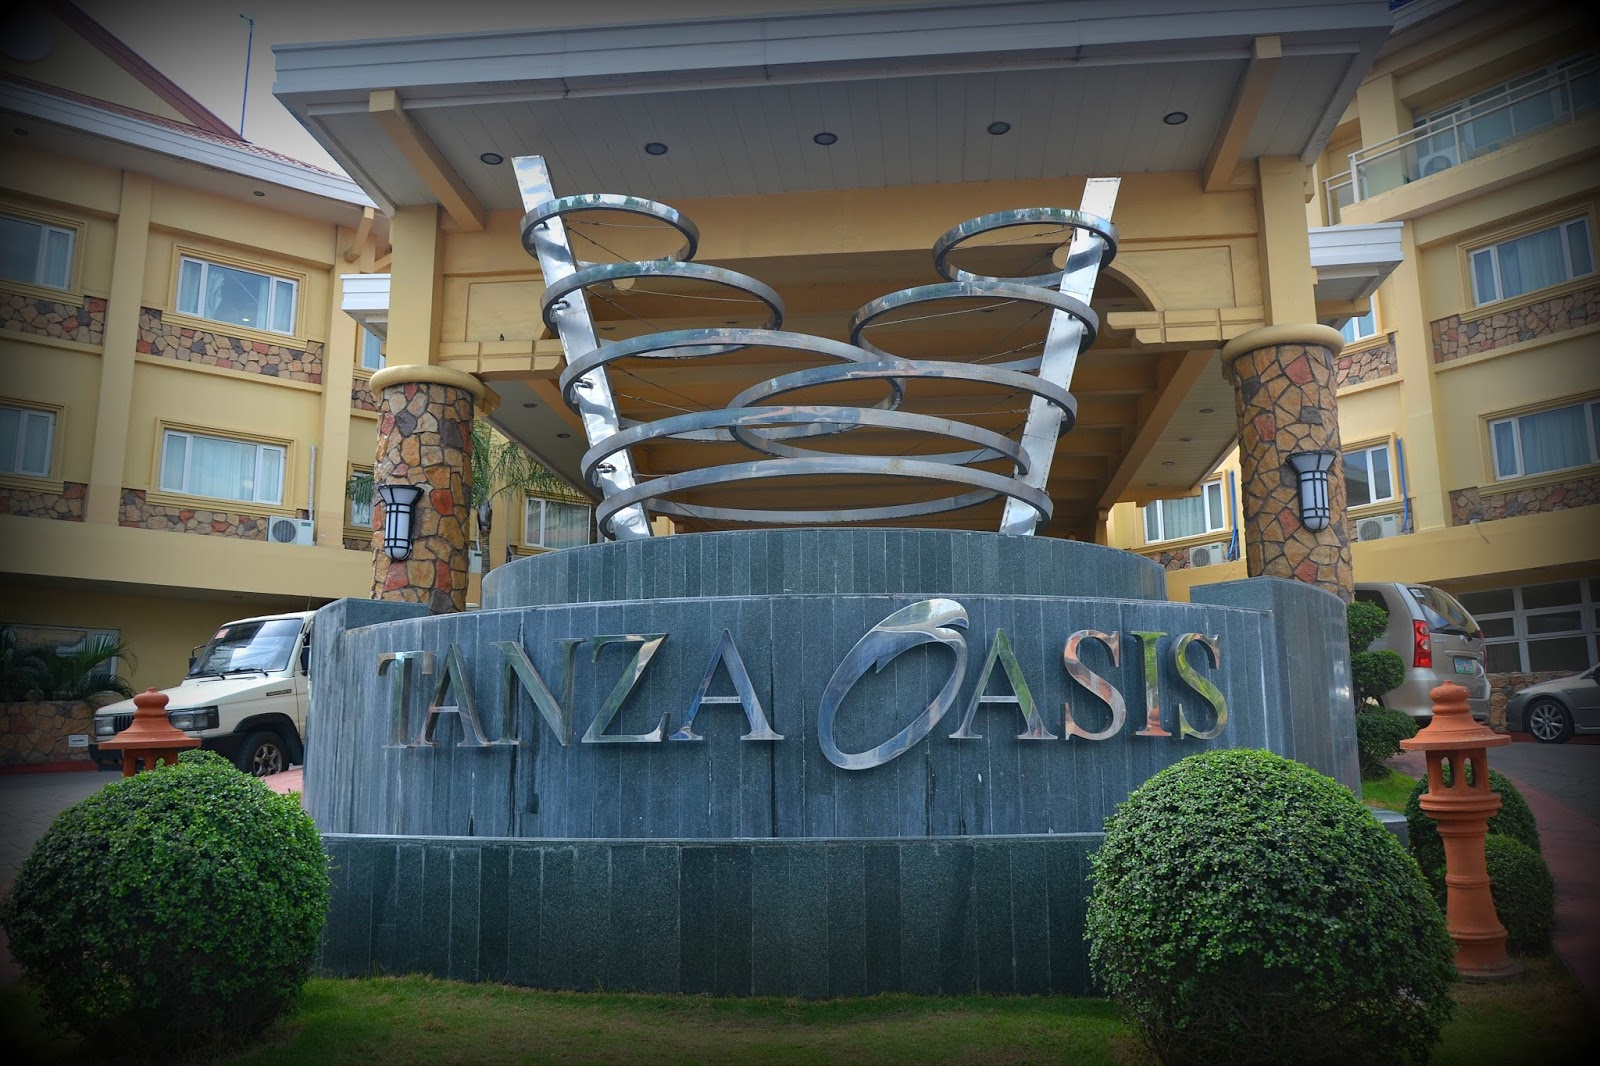 Tanza Oasis Hotel and Resort